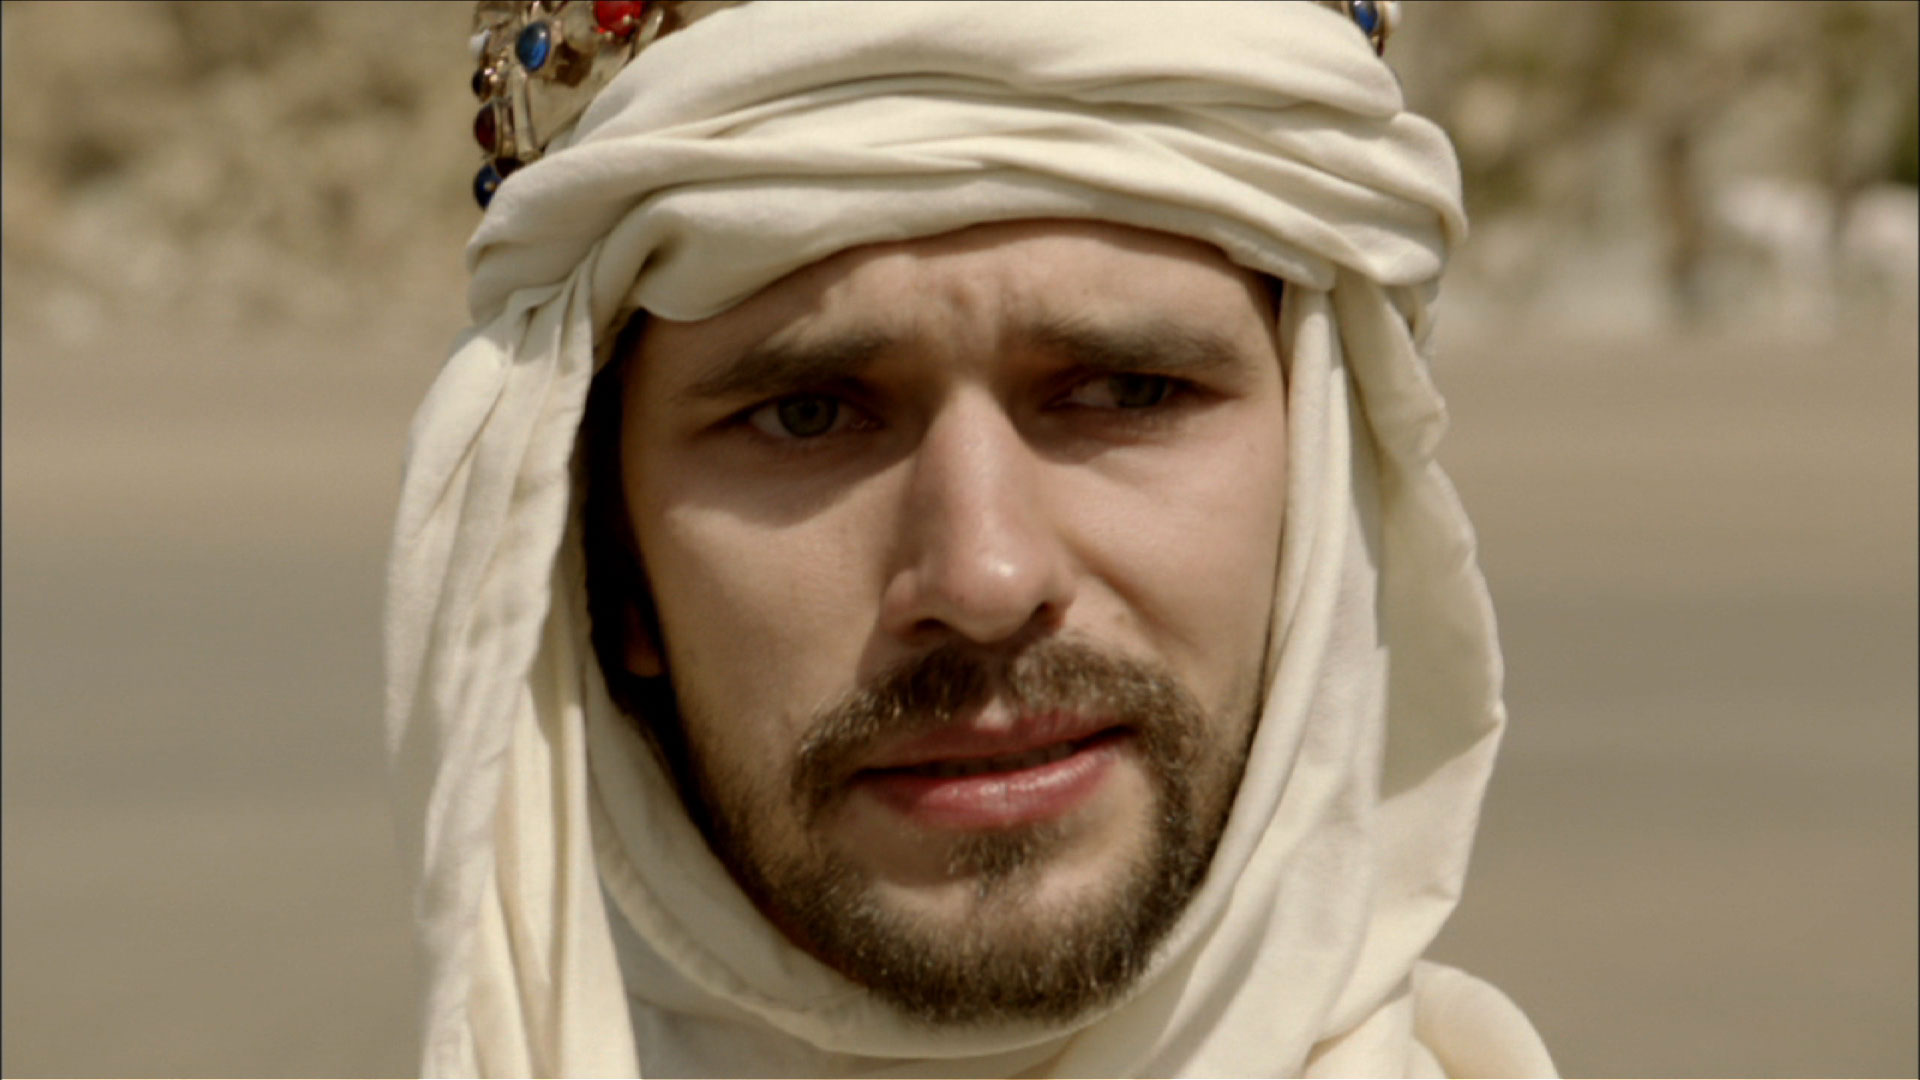 shakespeare the historian richard ii David wrote his thesis on shakespeare's early history plays, including richard ii, and their relationship to the epic poem the civil wars by samuel daniel, a contemporary of shakespeare's david will be happy to discuss any aspect of richard ii , but will also present a manuscript of daniel's poem that may have served as one of.